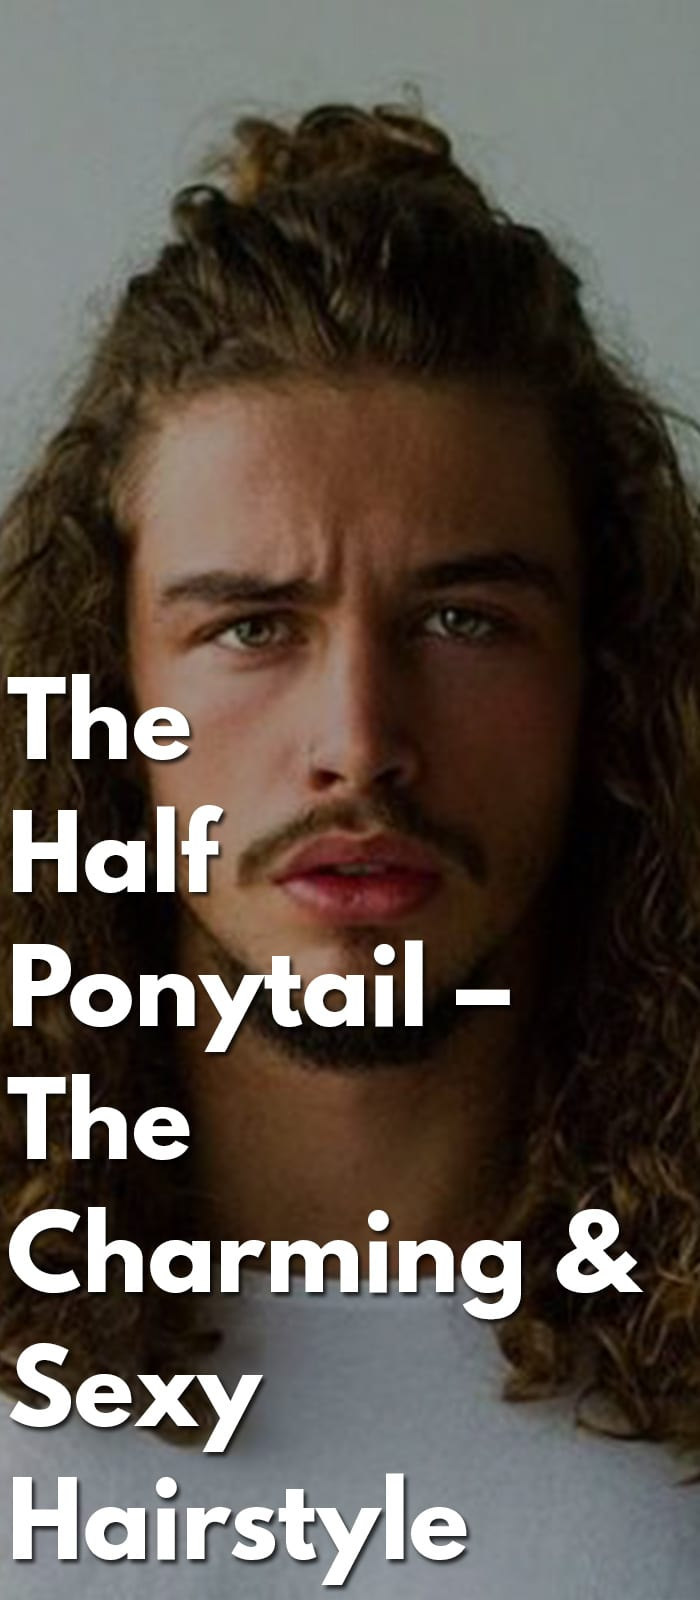 The-Half-Ponytail-–-The-Charming-&-Sexy-Hairstyle.